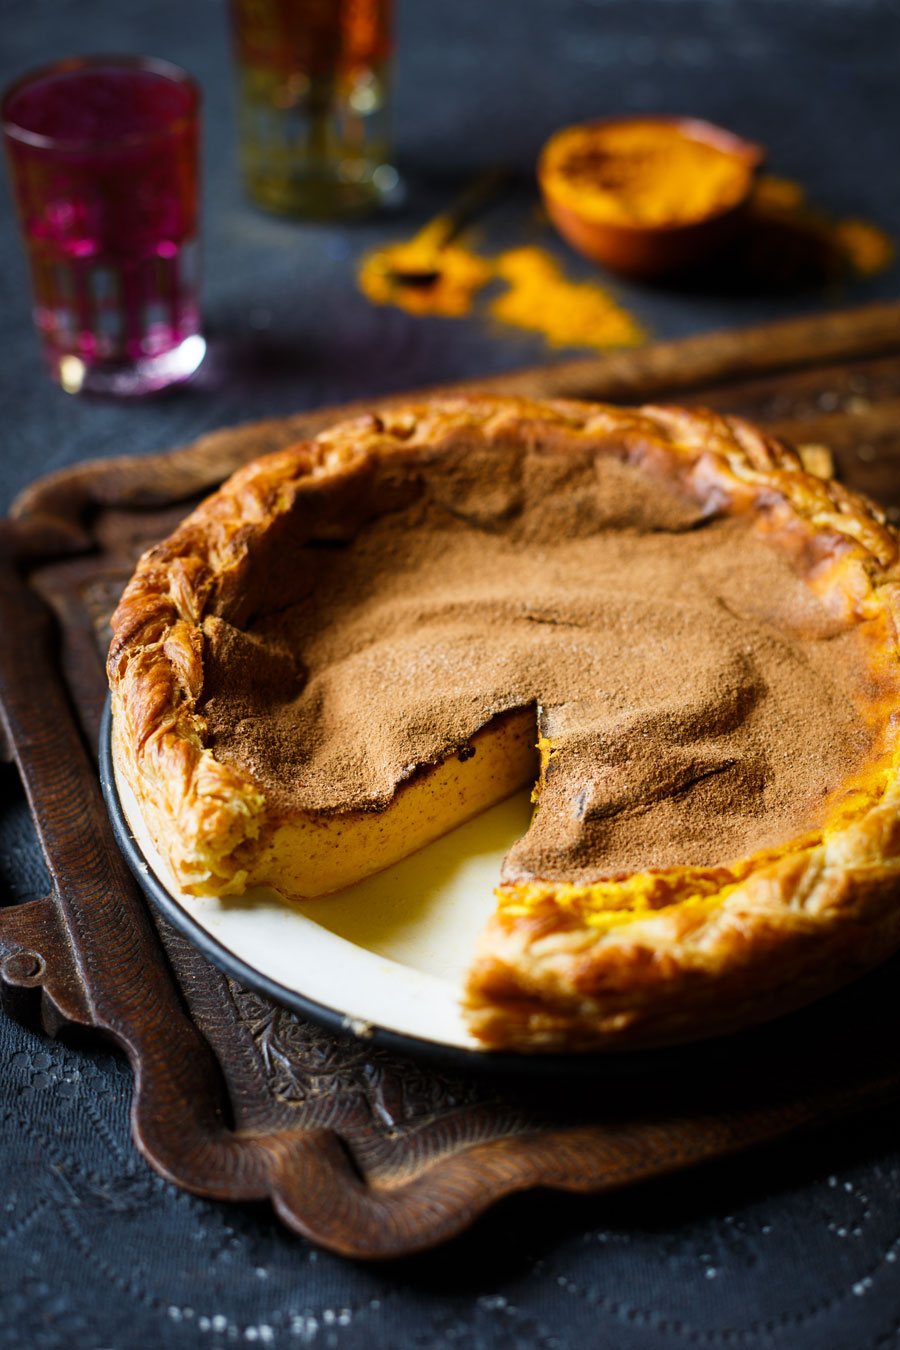 Turmeric Milk Tart Recipe How To Make A Melktert With A Twist